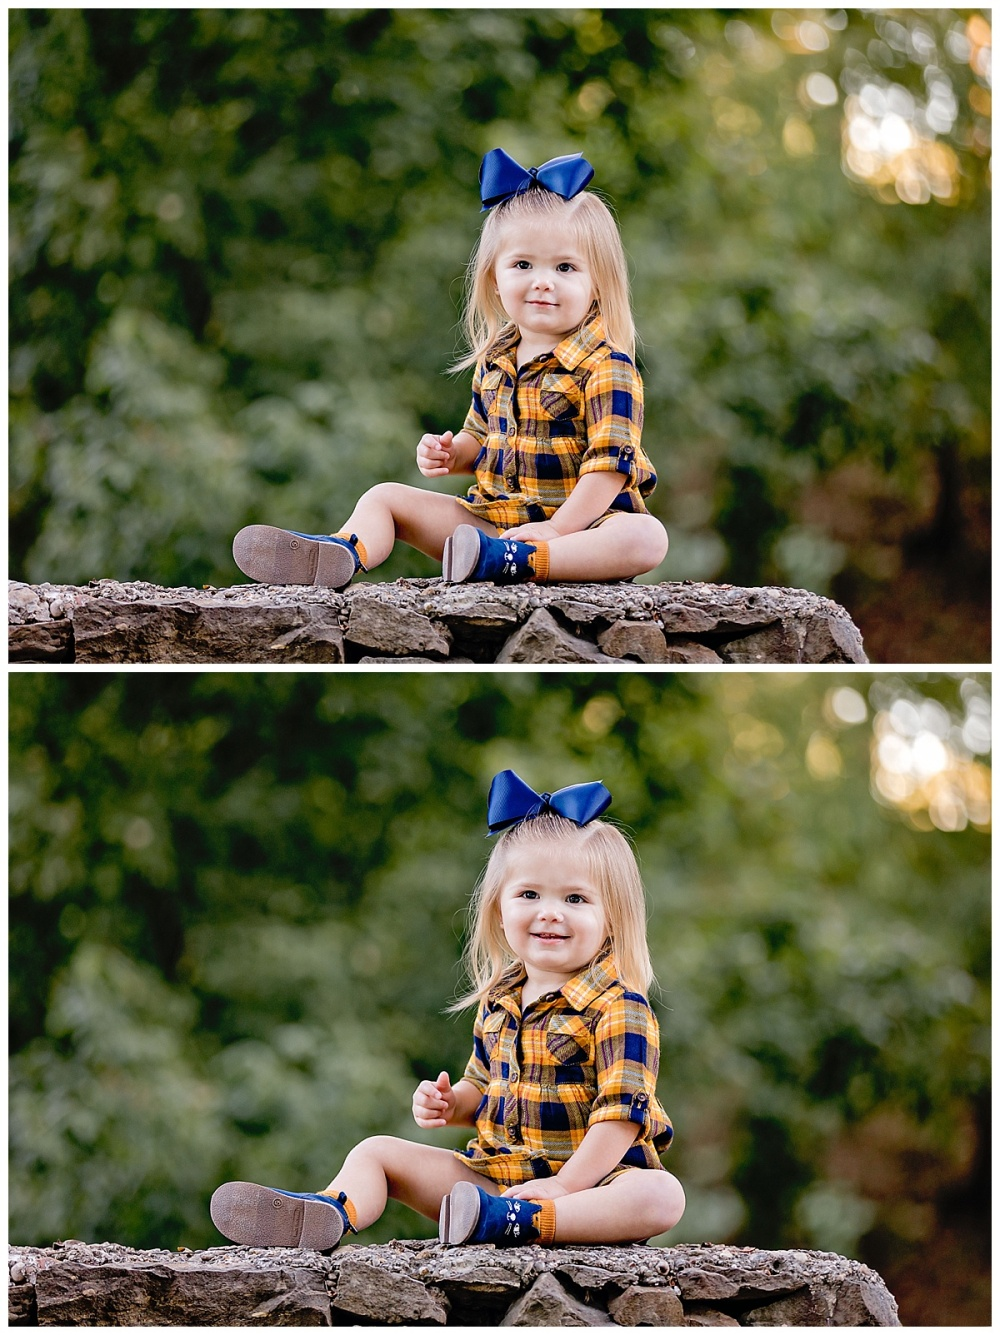 Landyn-Two-Year-Birthday-Photos-Walnut-Springs-Park-Seguin-Texas-Carly-Barton-Photography_0001.jpg